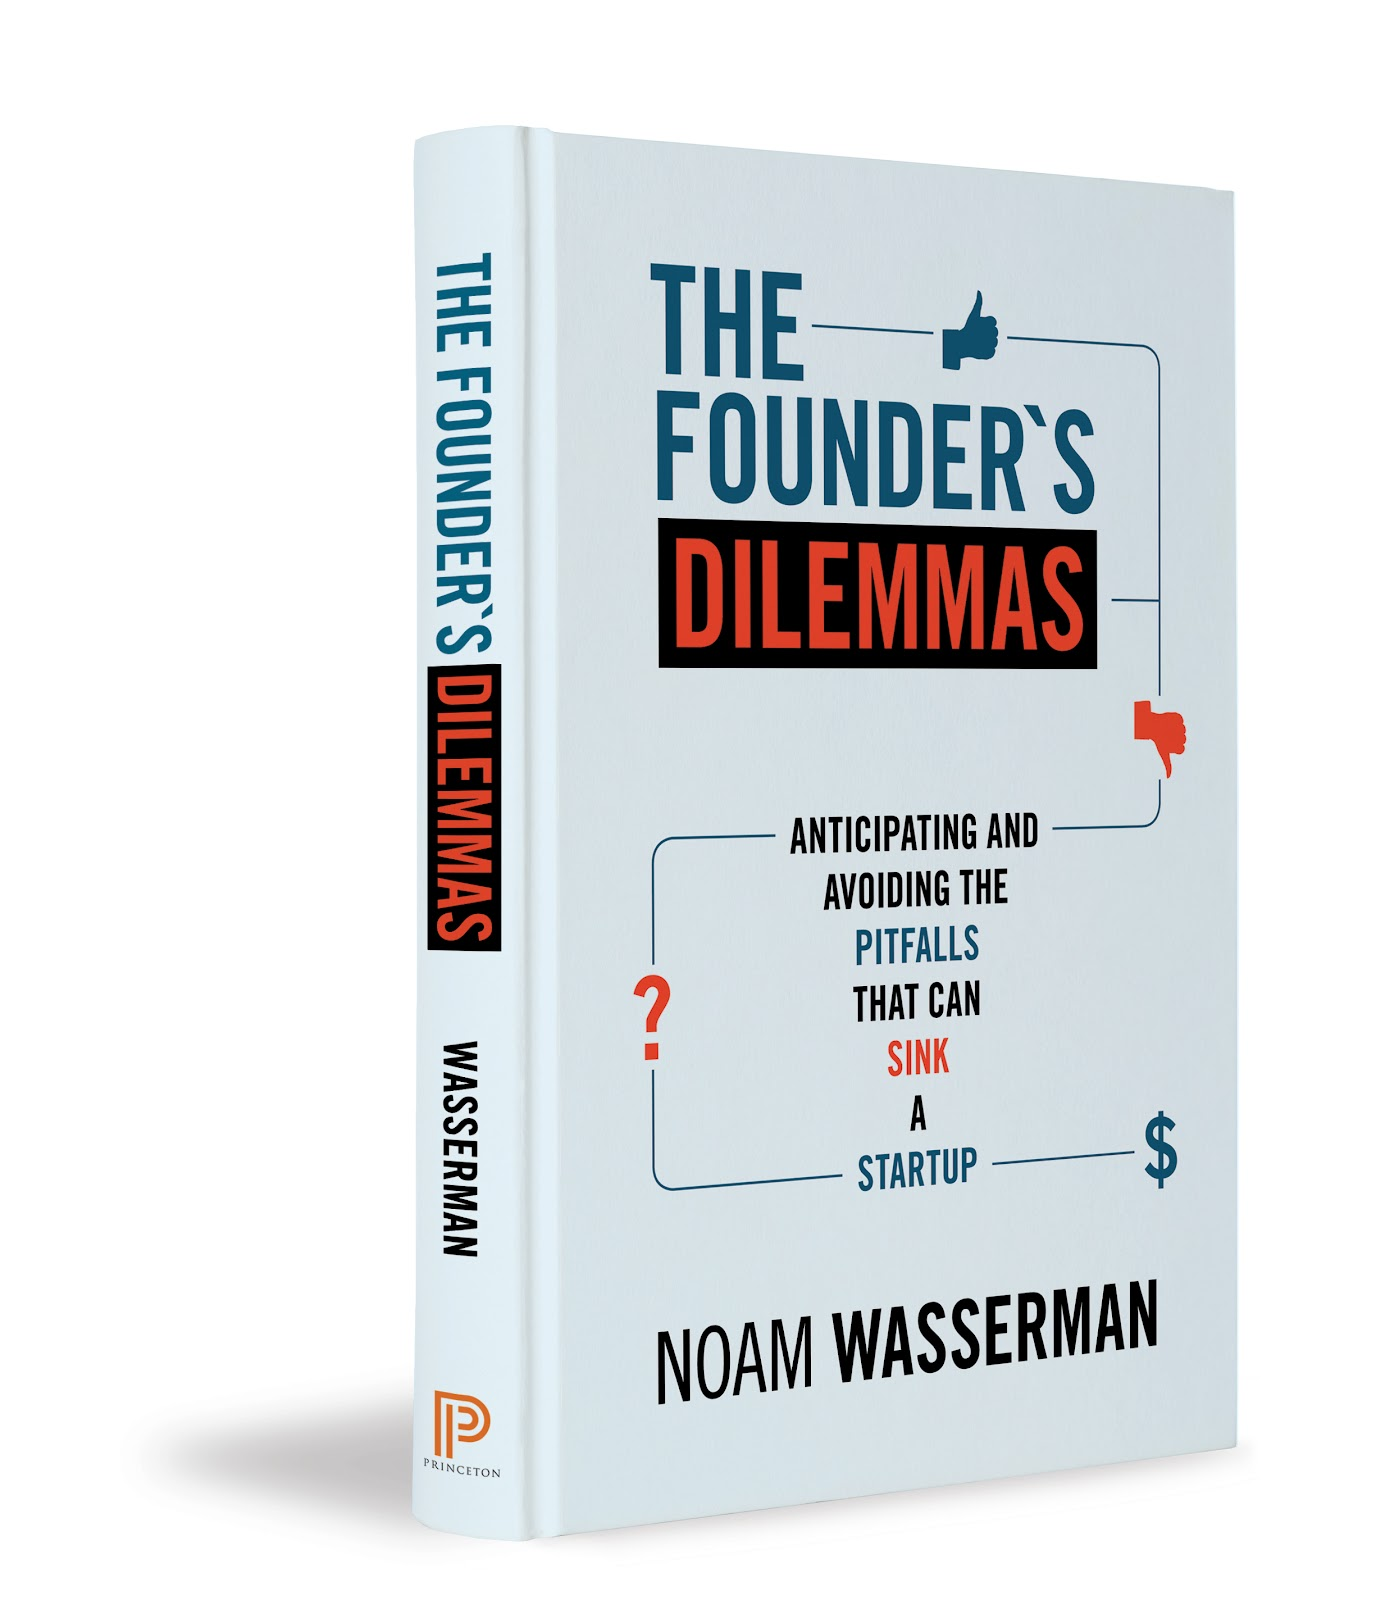 Book review: The Founder's Dilemma by Noam Wasserman